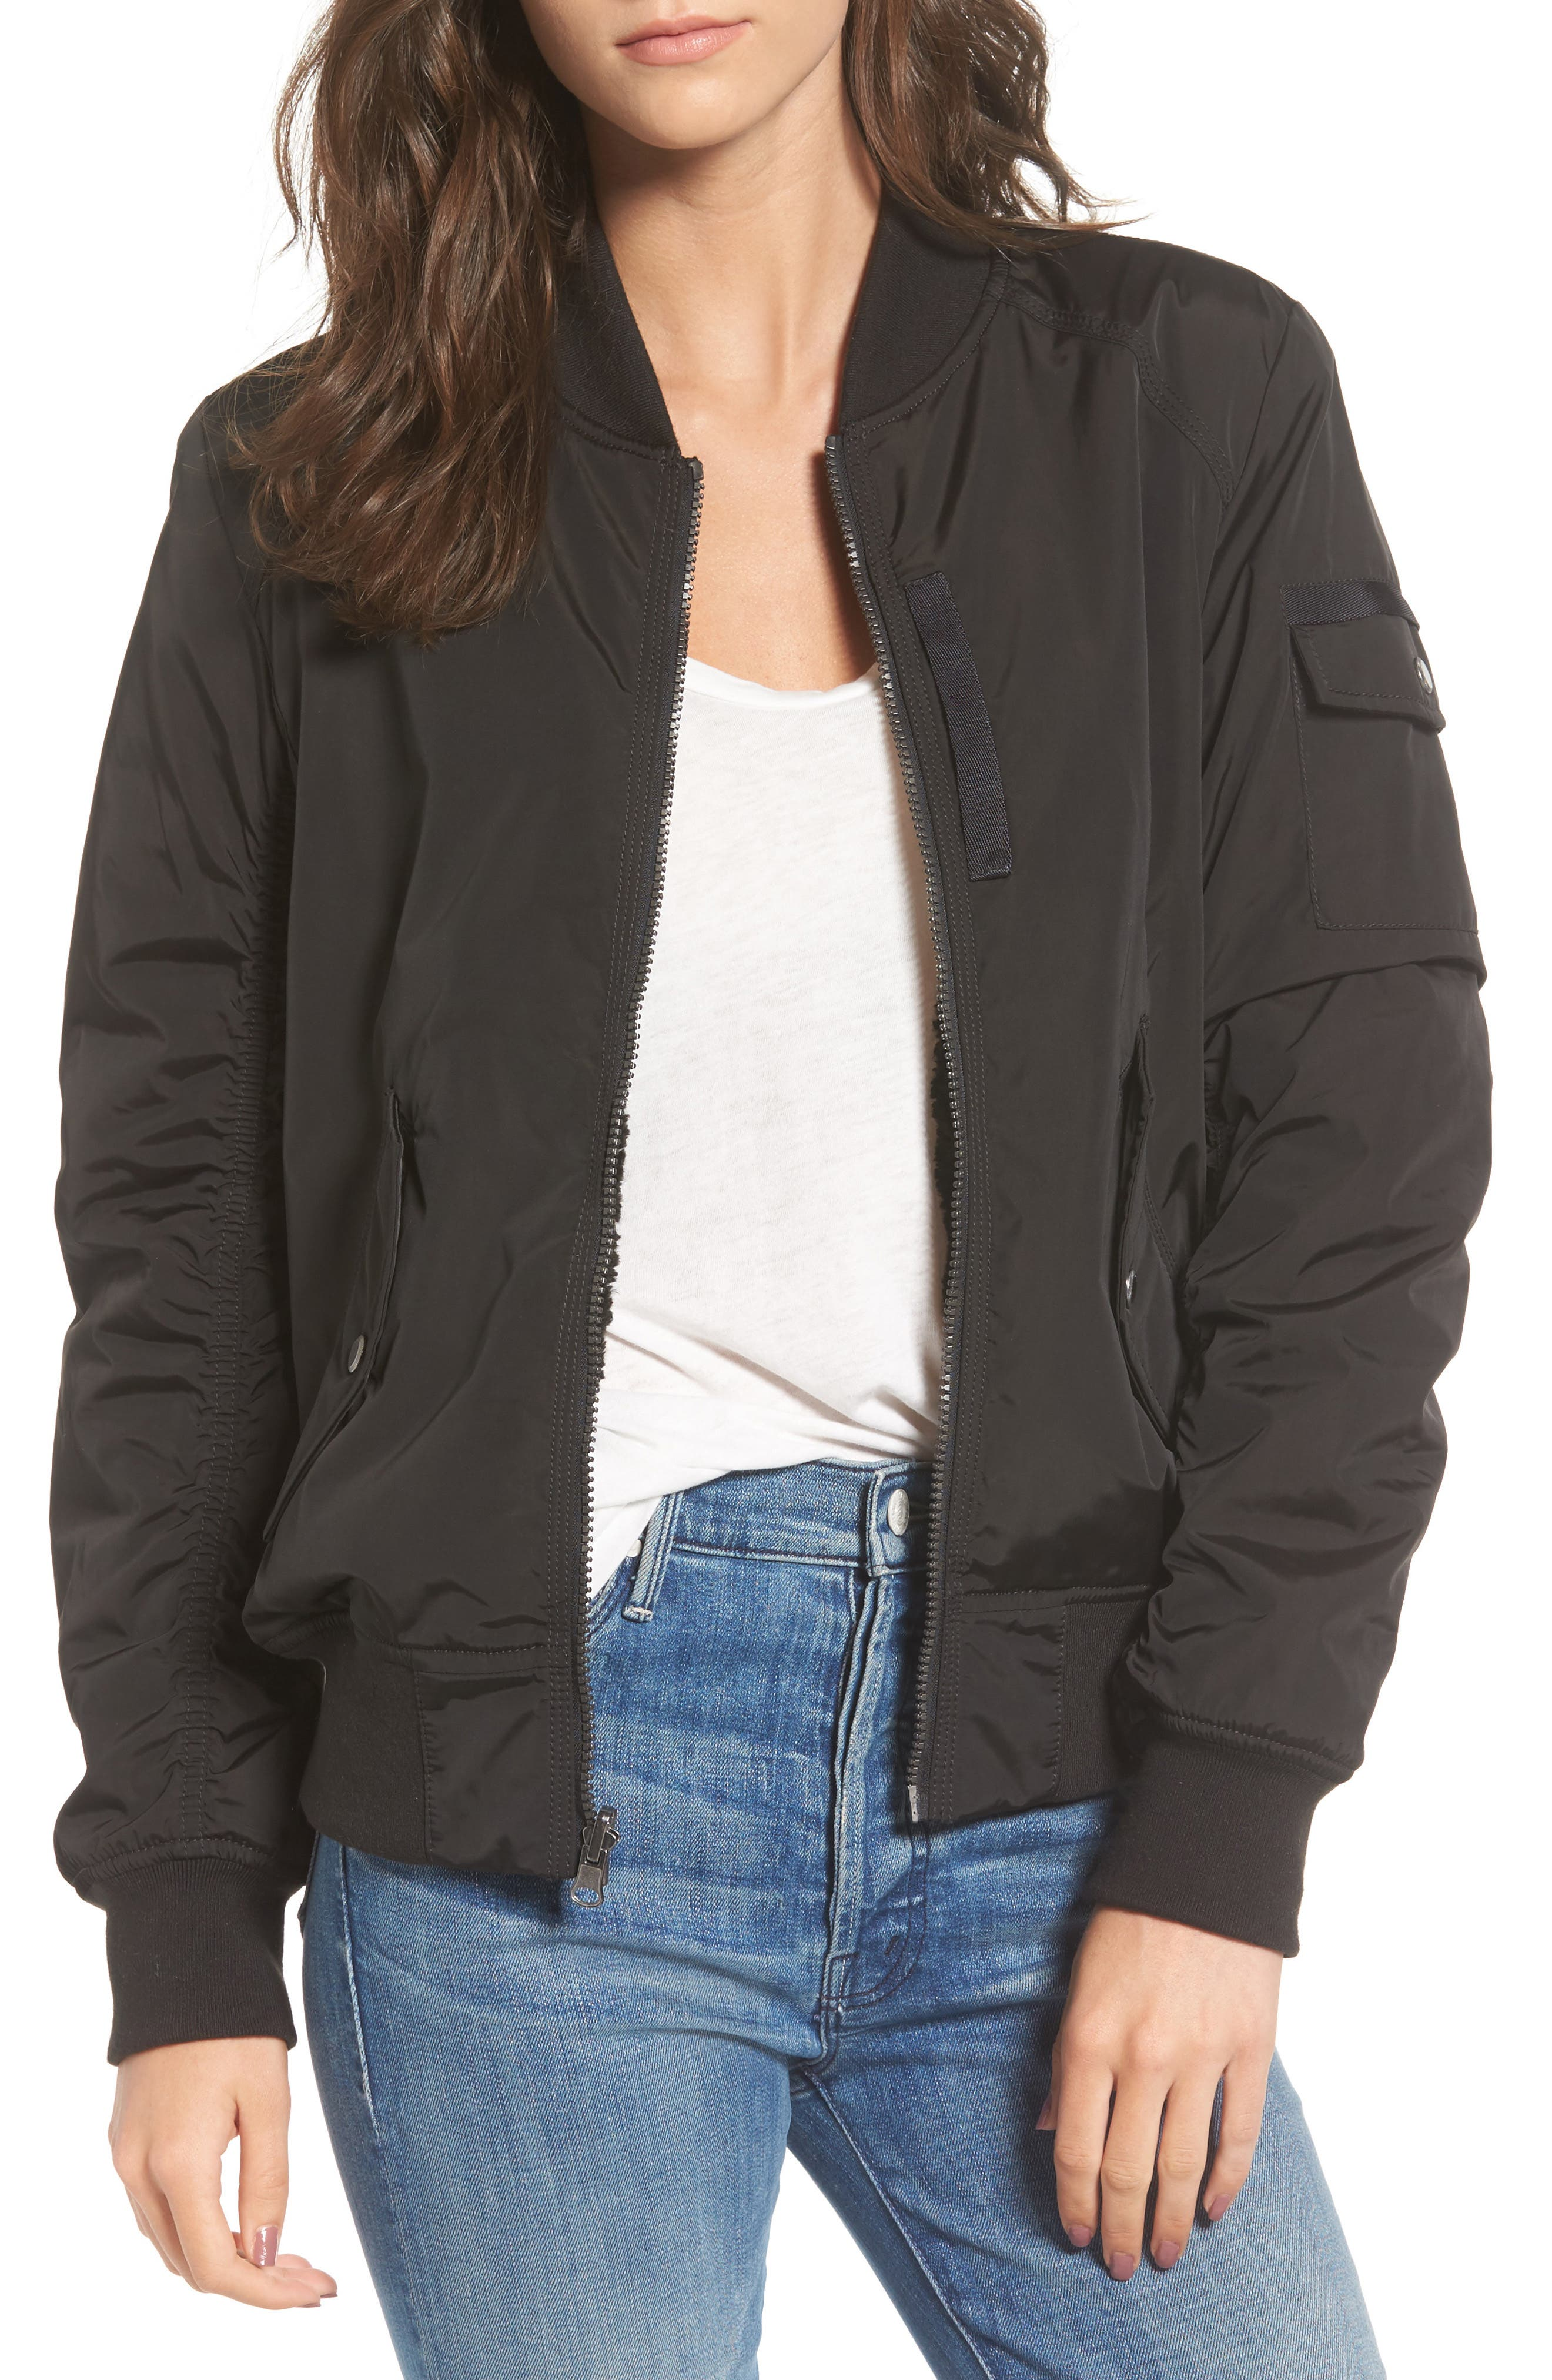 Alternate Image 1 Selected - Andrew Marc Nicole Reversible Bomber Jacket